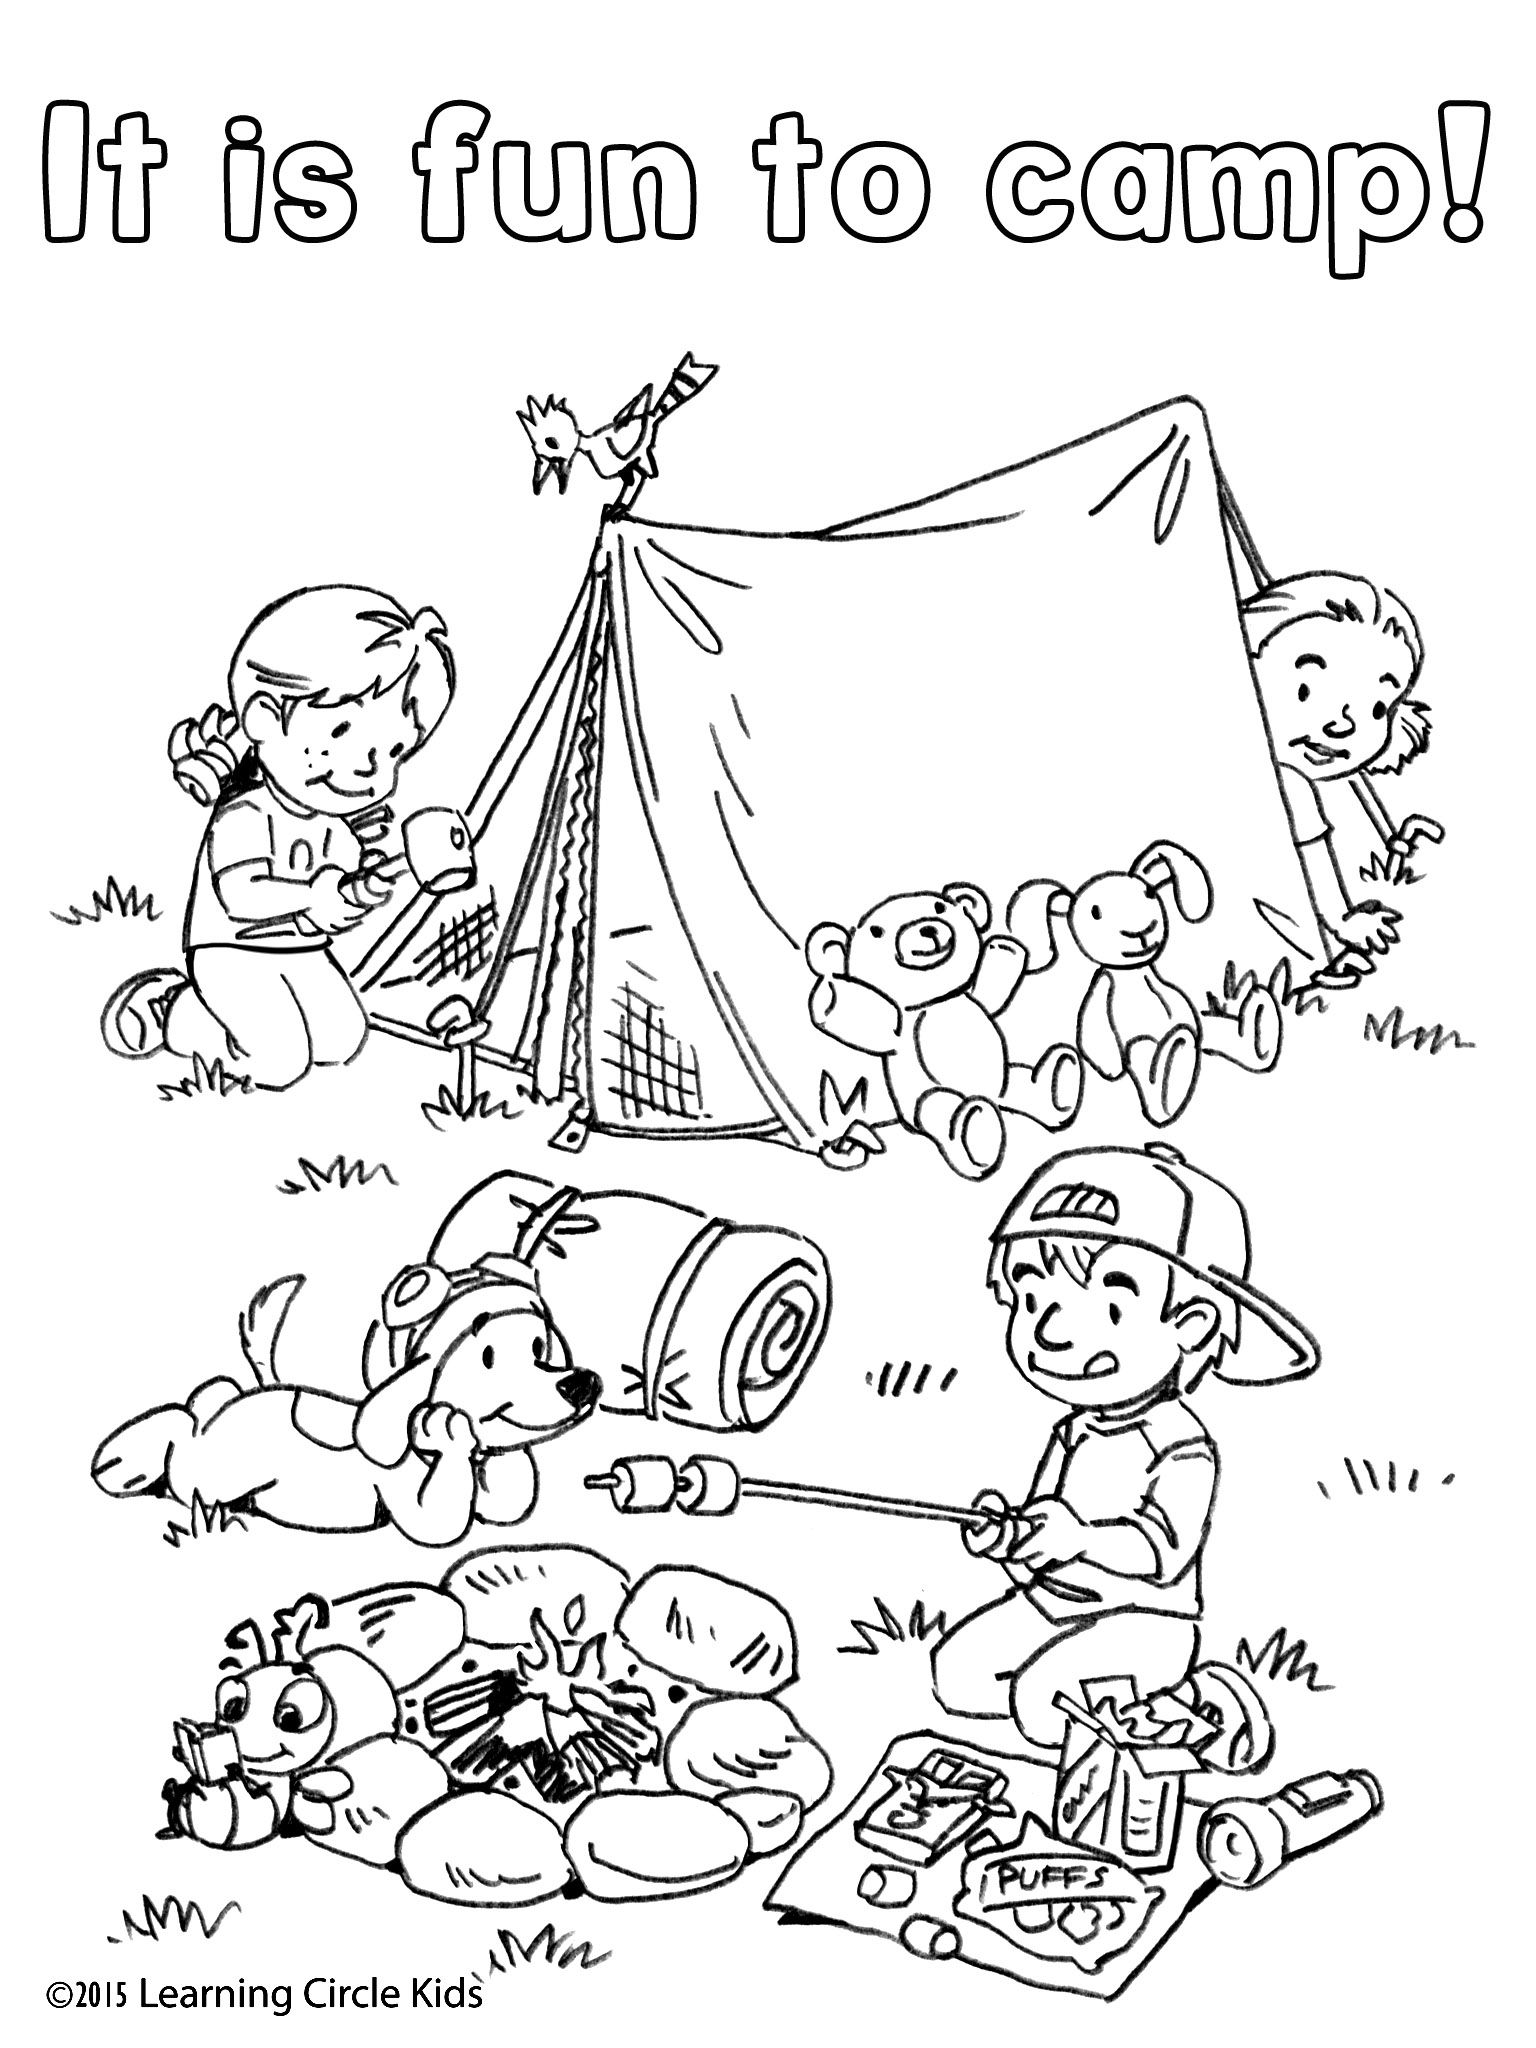 Coloring summer activities - Free Coloring And Reading Page Summer Fun Camping With Reader Bee And Friends